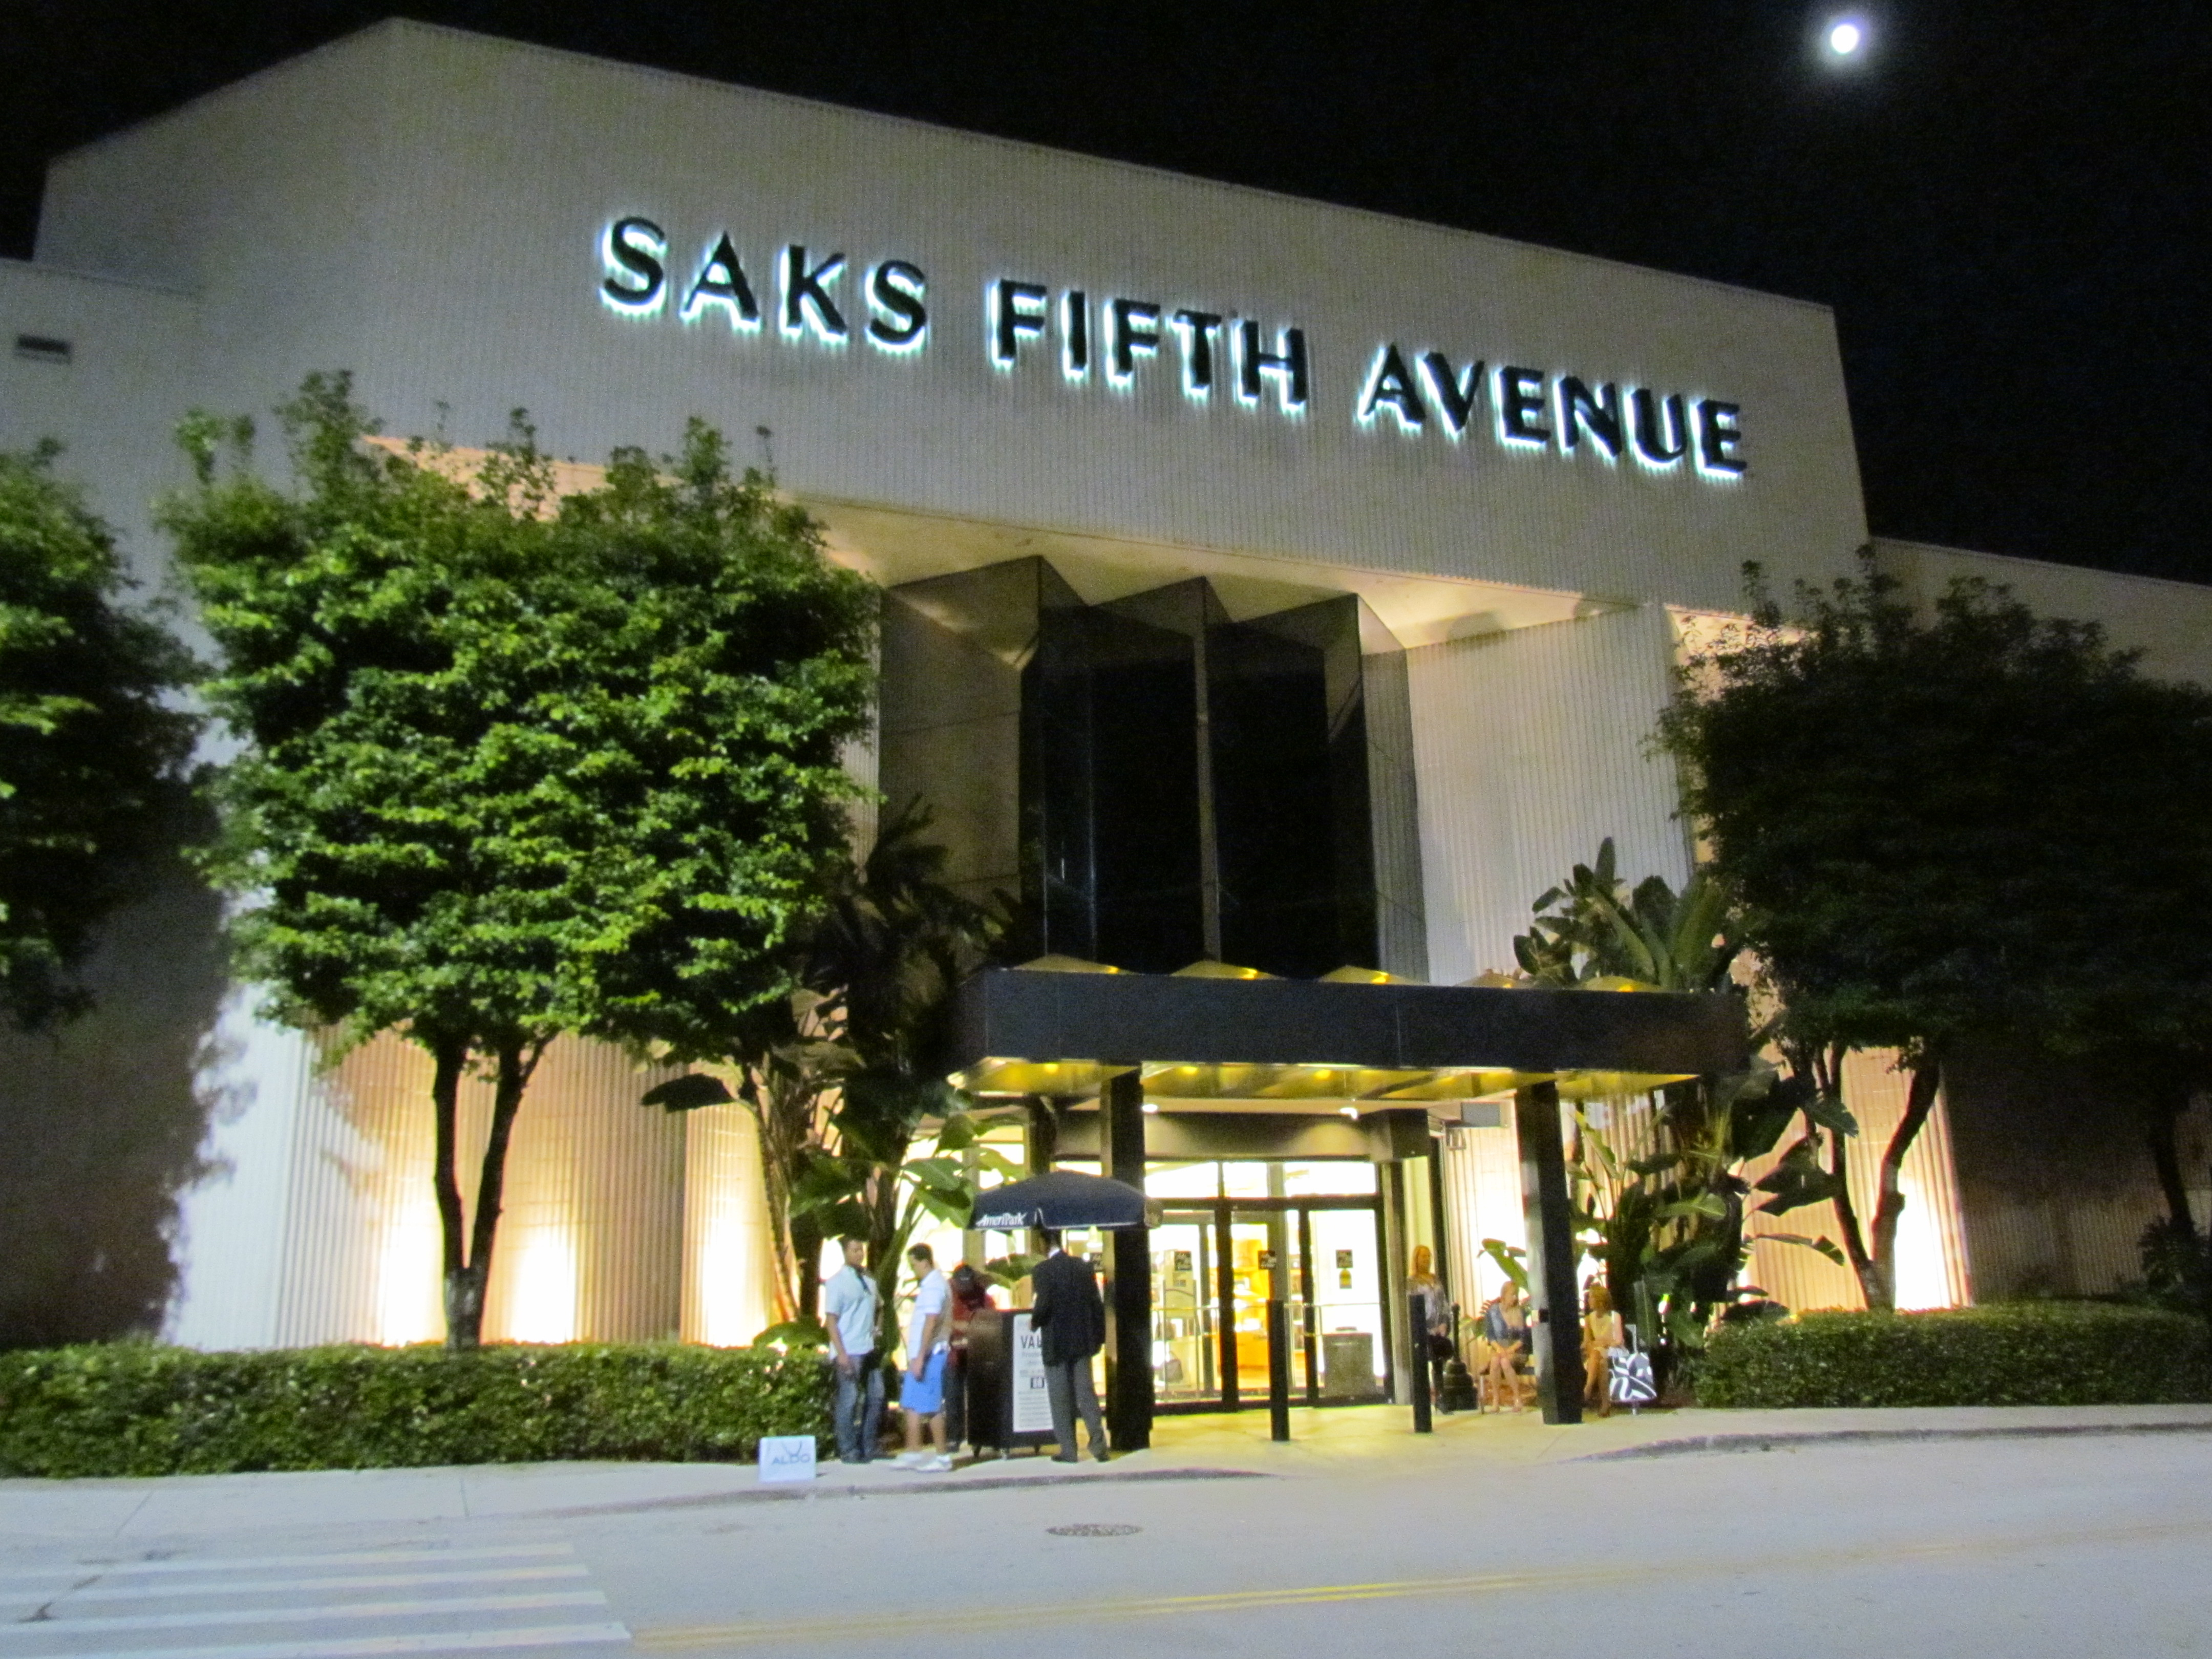 Saks Fifth Avenue Promo Codes & Black Friday Deals for November, Save with 14 active Saks Fifth Avenue promo codes, coupons, and free shipping deals. 🔥 Today's Top Deal: (@Amazon) Up To 15% Off Saks Fifth Avenue. On average, shoppers save $45 using Saks Fifth Avenue coupons from tiospecicin.gq